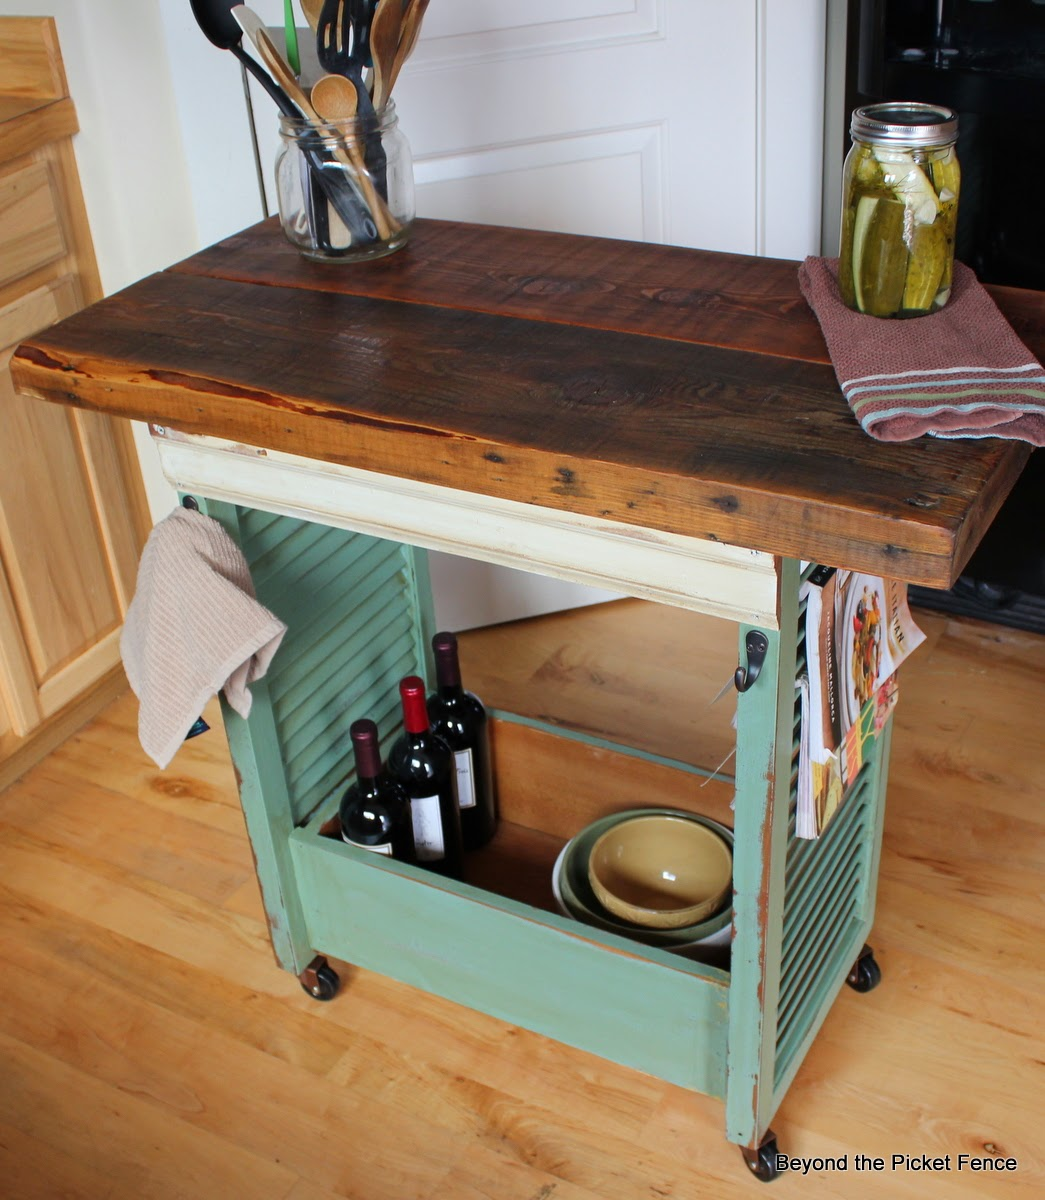 repurposed, kitchen island, shutters, old drawer, Beyond The Picket Fence http://bec4-beyondthepicketfence.blogspot.com/2013/08/shutter-island.html